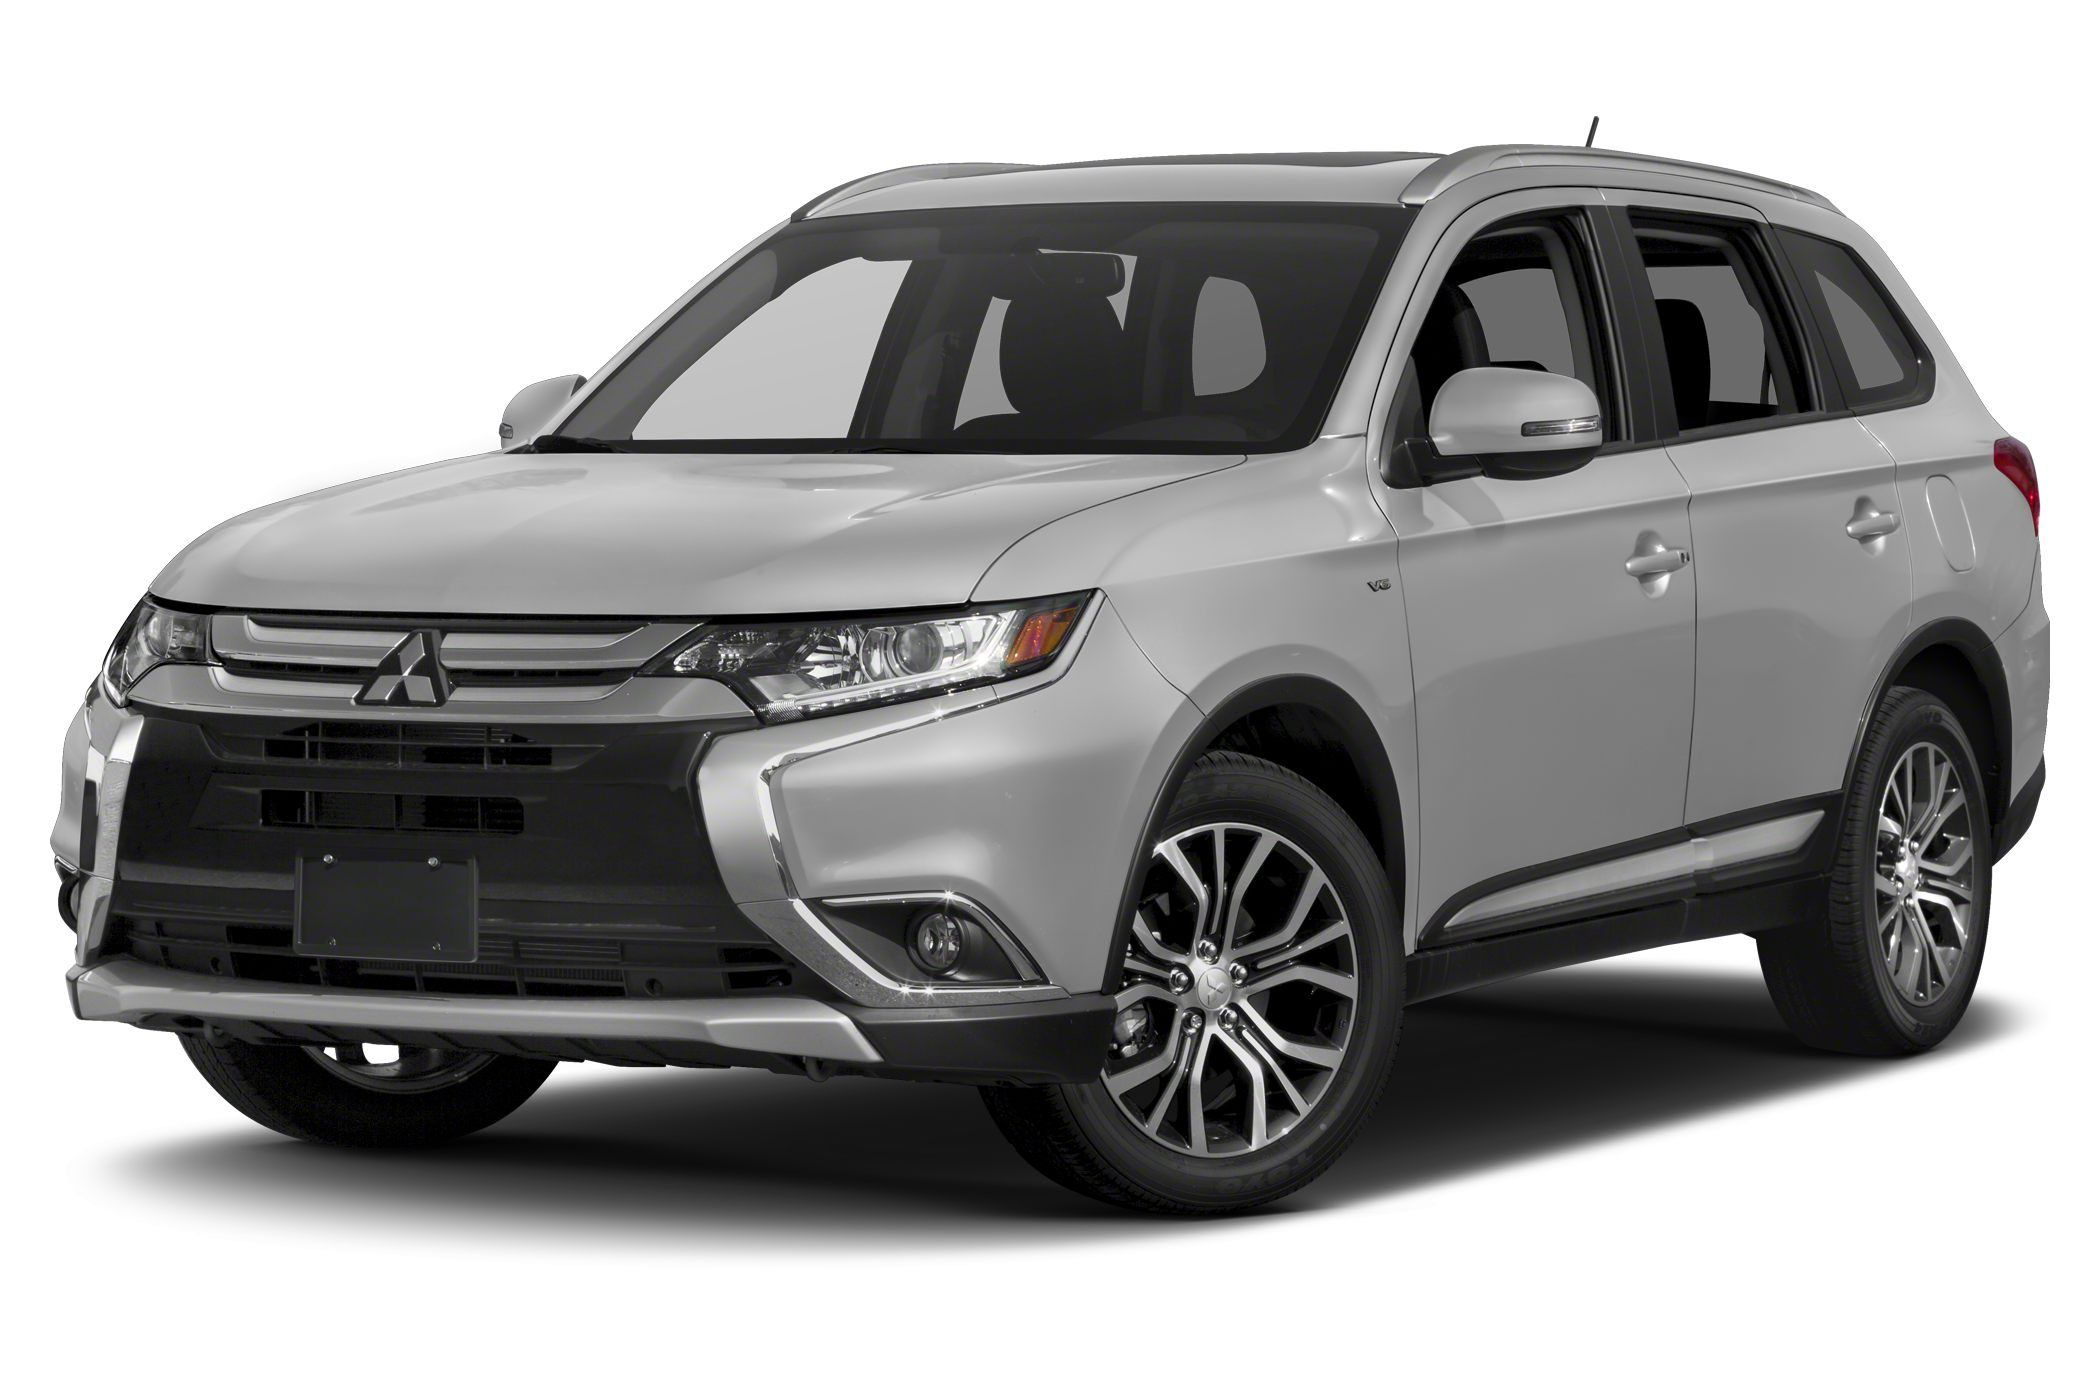 2020 All Mitsubishi Pajero Price And Review In 2020 Mitsubishi Outlander Mitsubishi Outlander Sport 2017 Mitsubishi Outlander